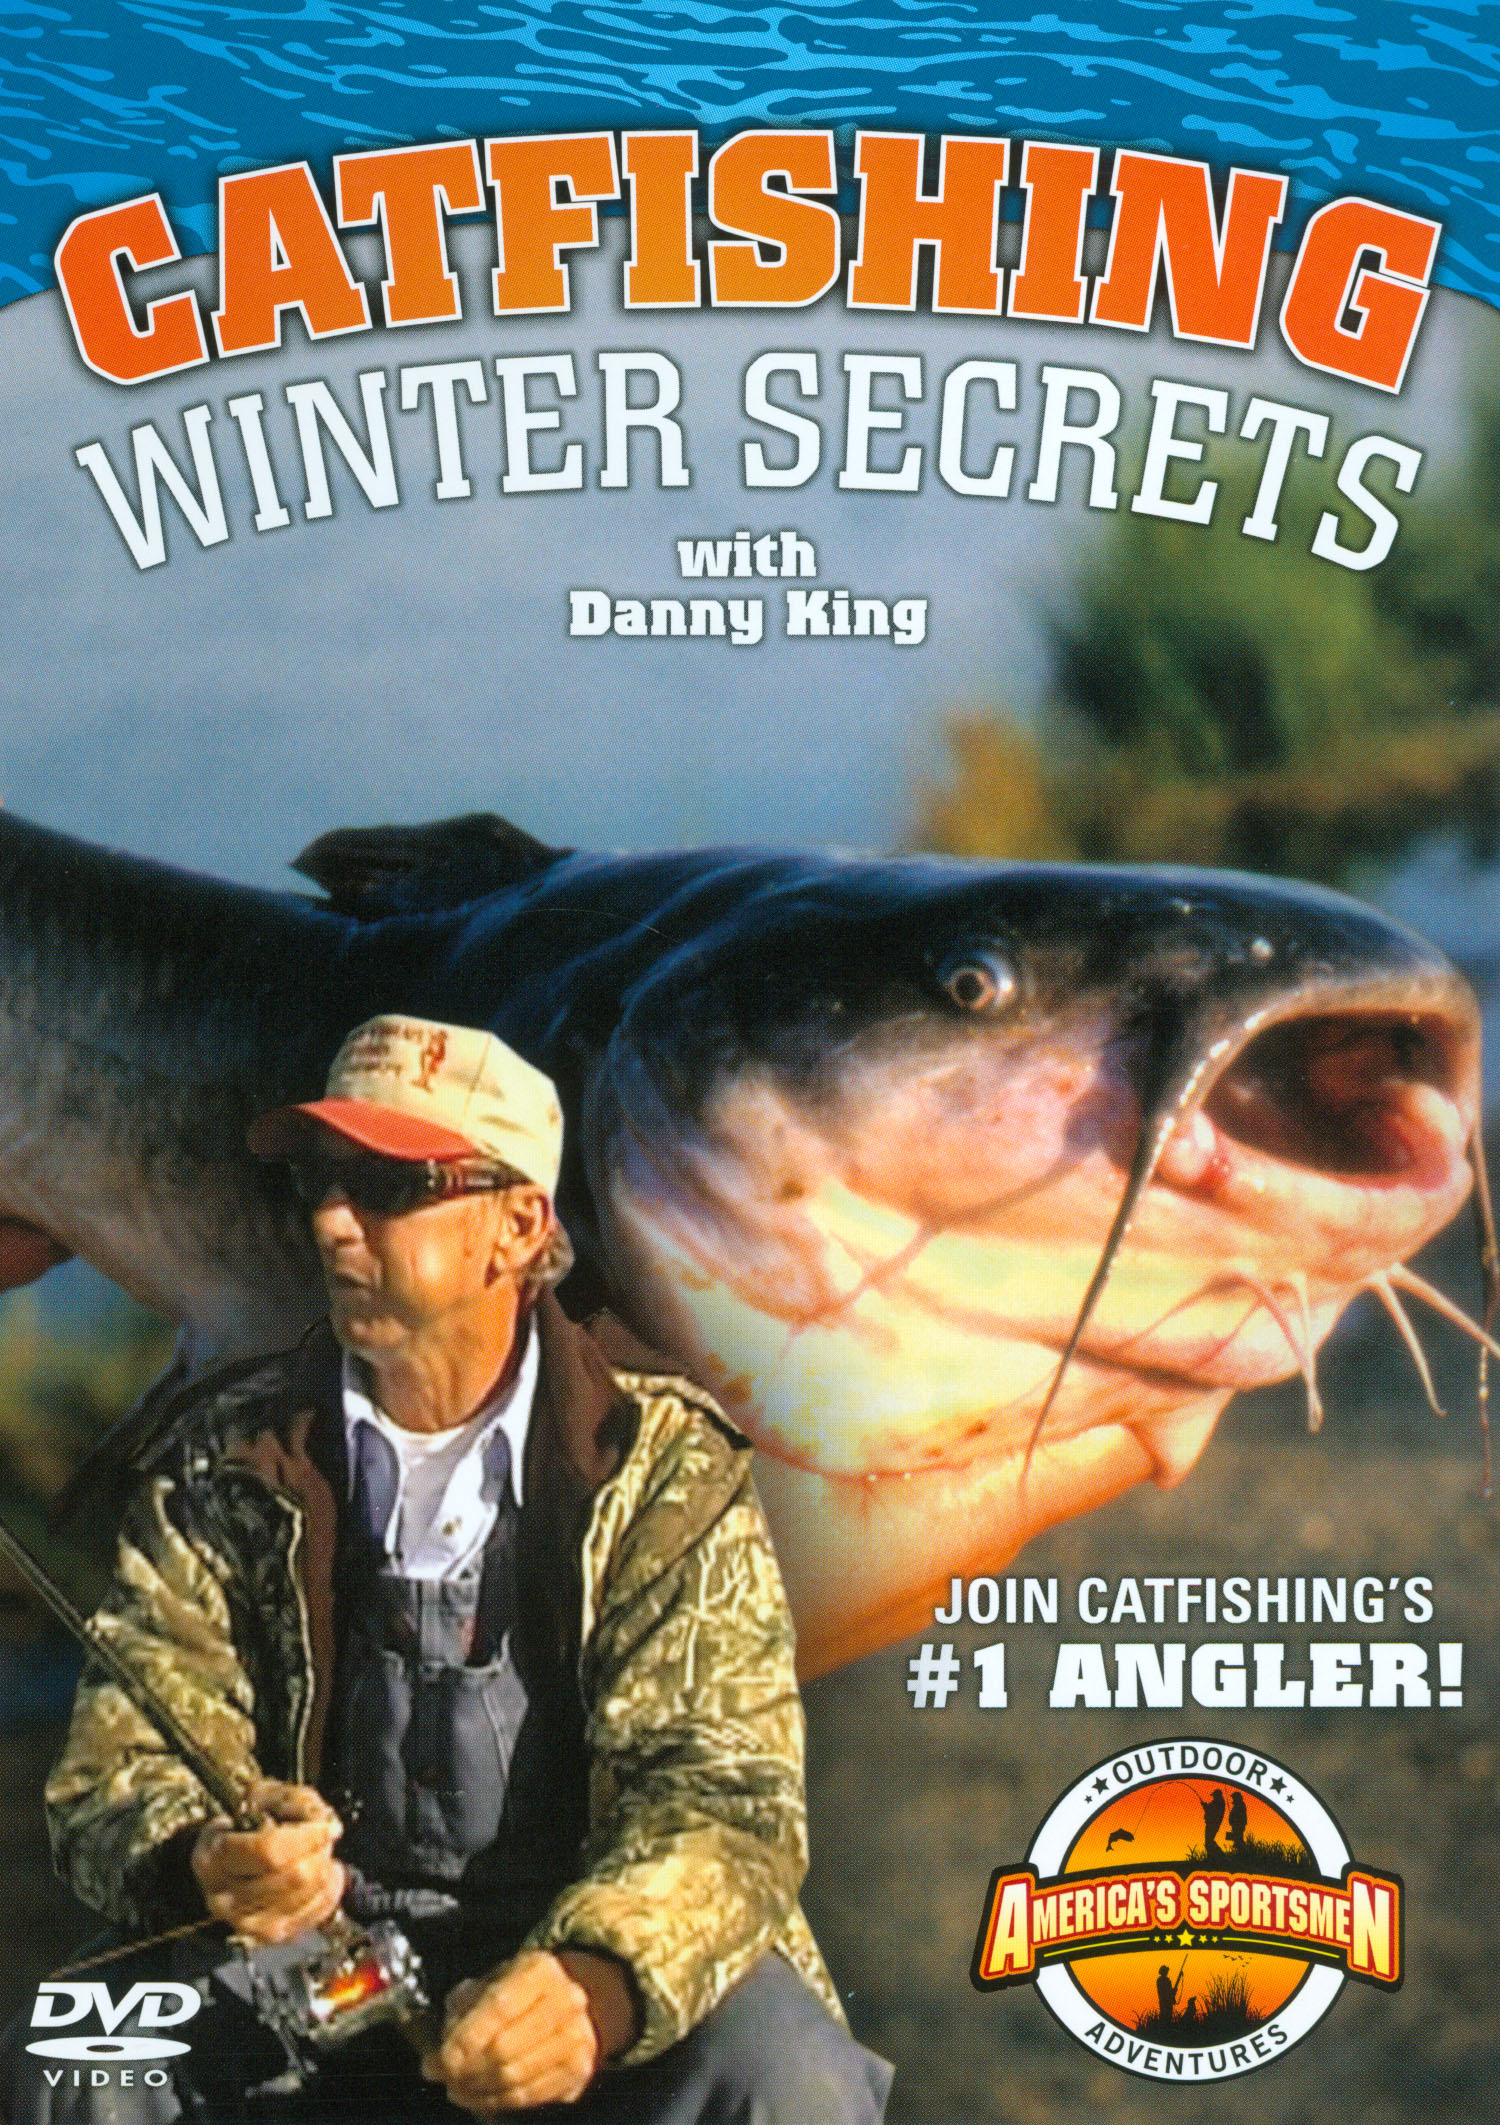 Catfishing: Winter Secrets with Danny King